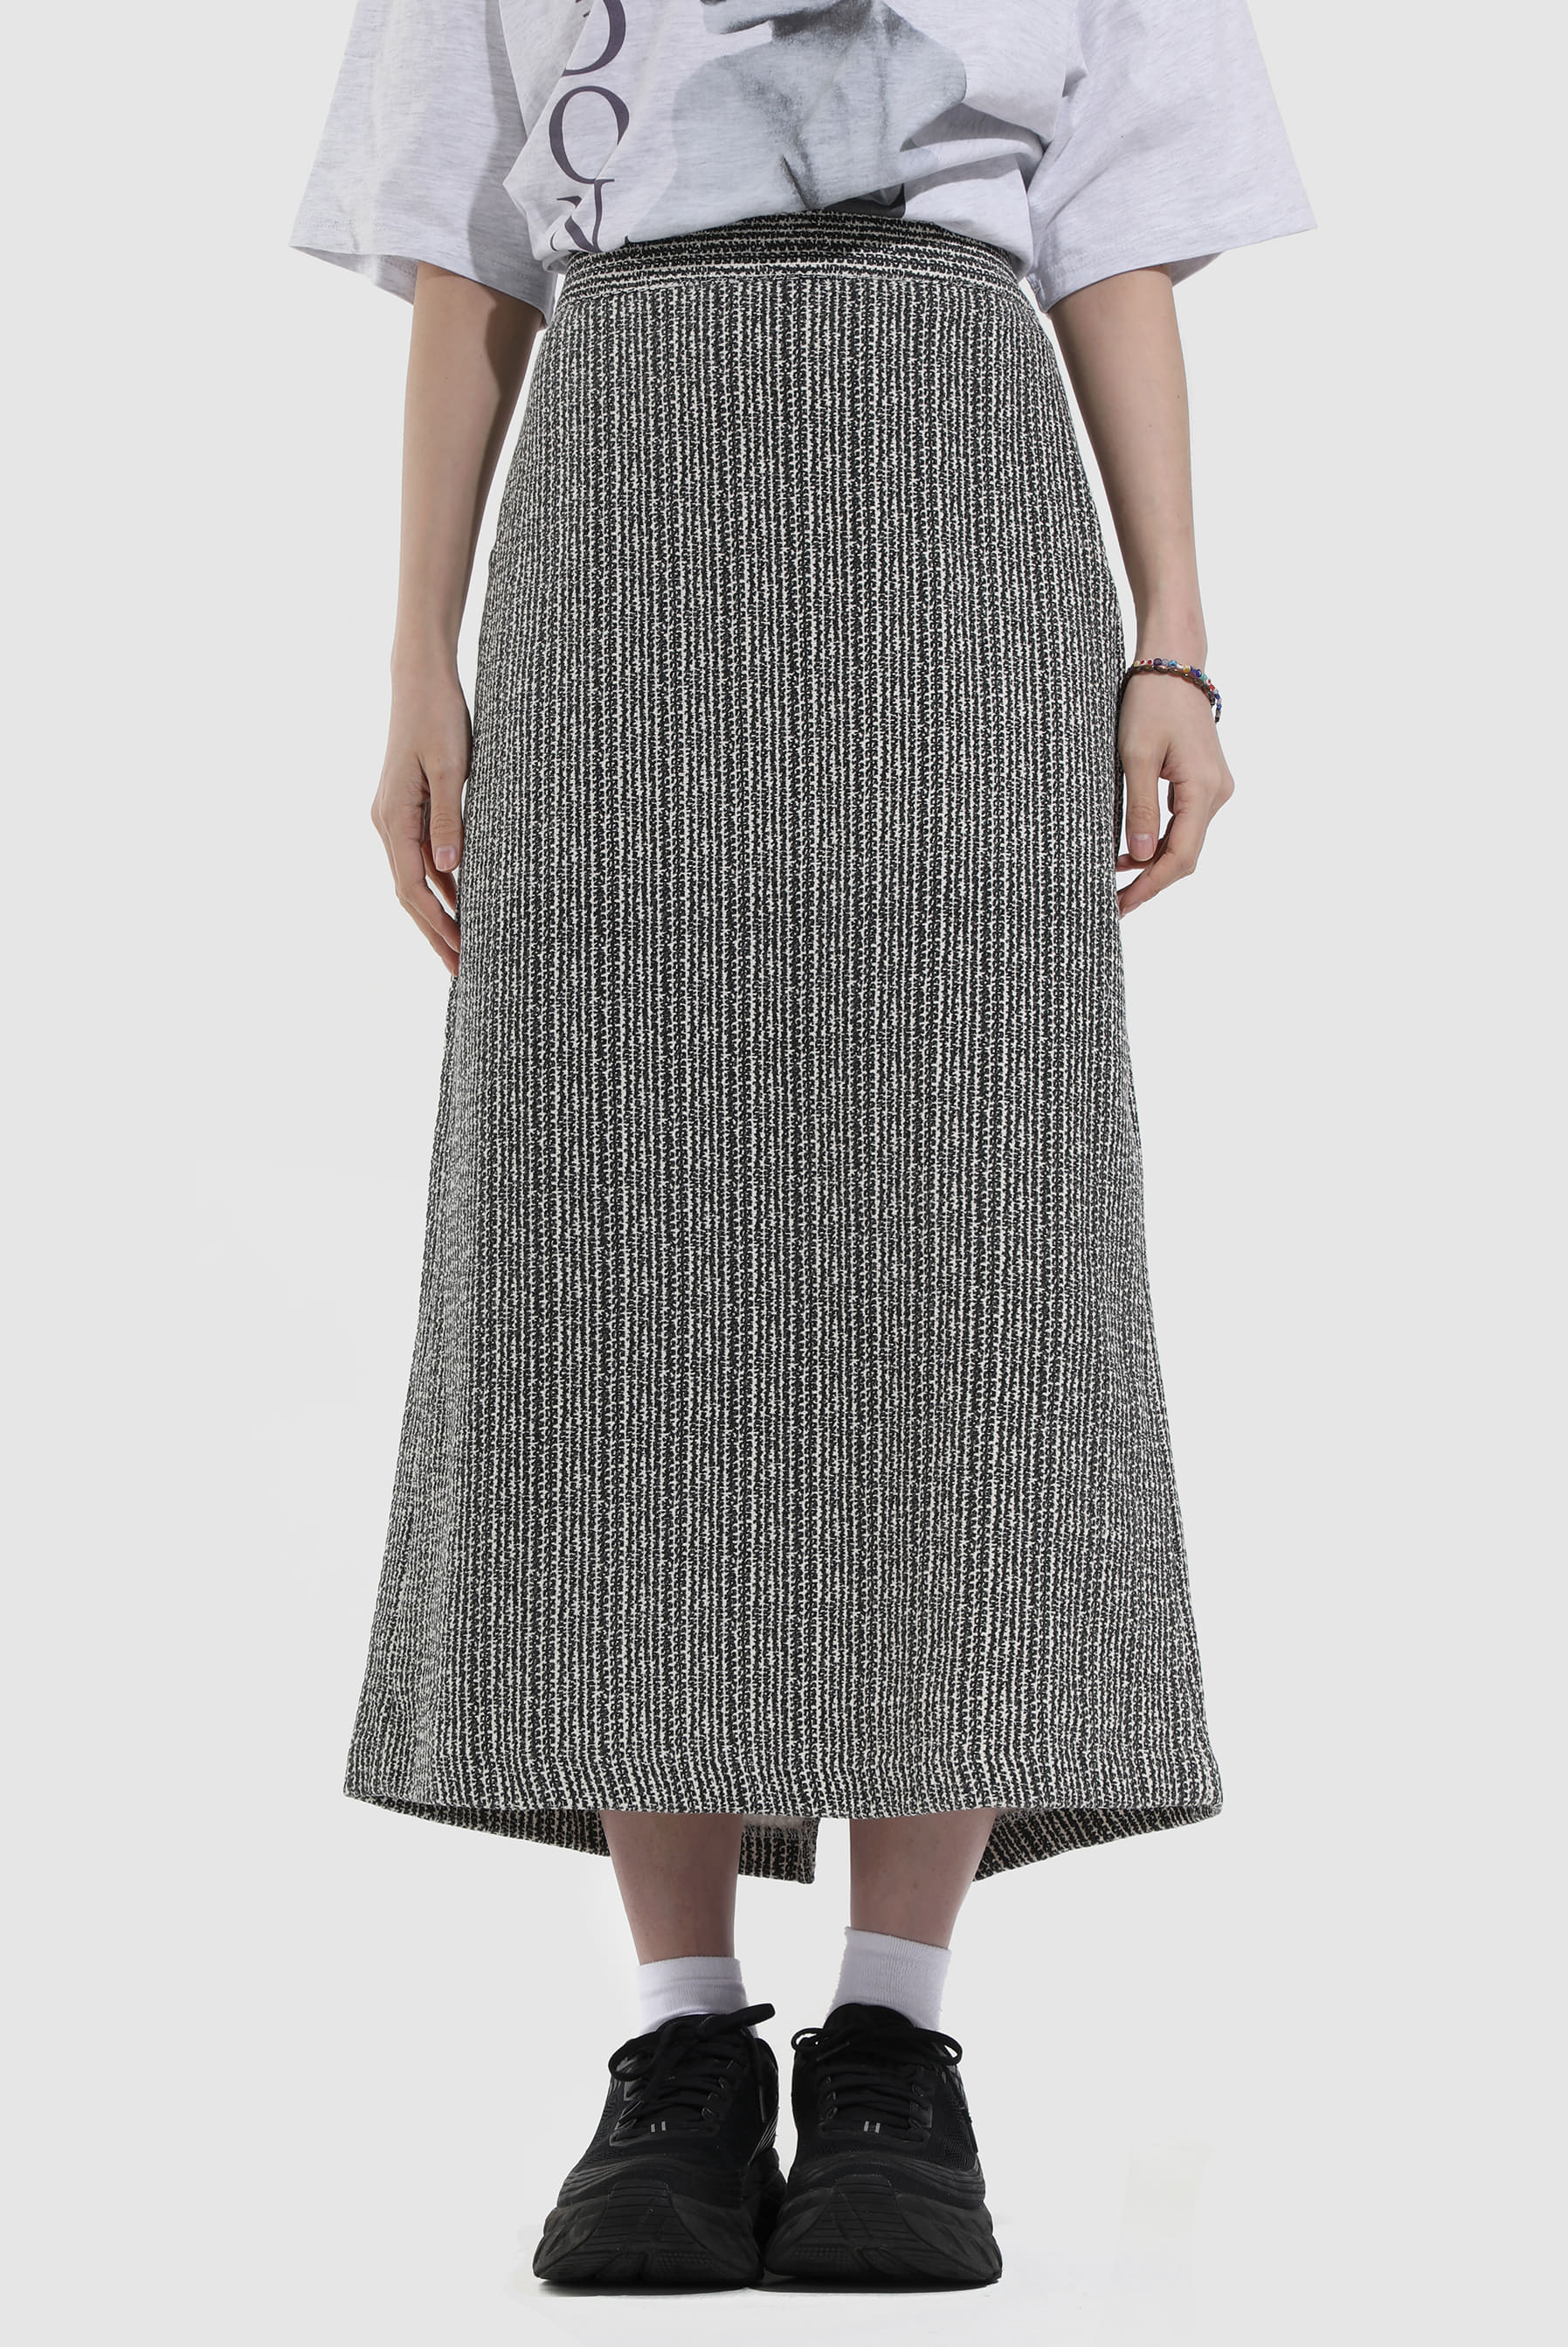 Jacquard_Denim Long Skirt